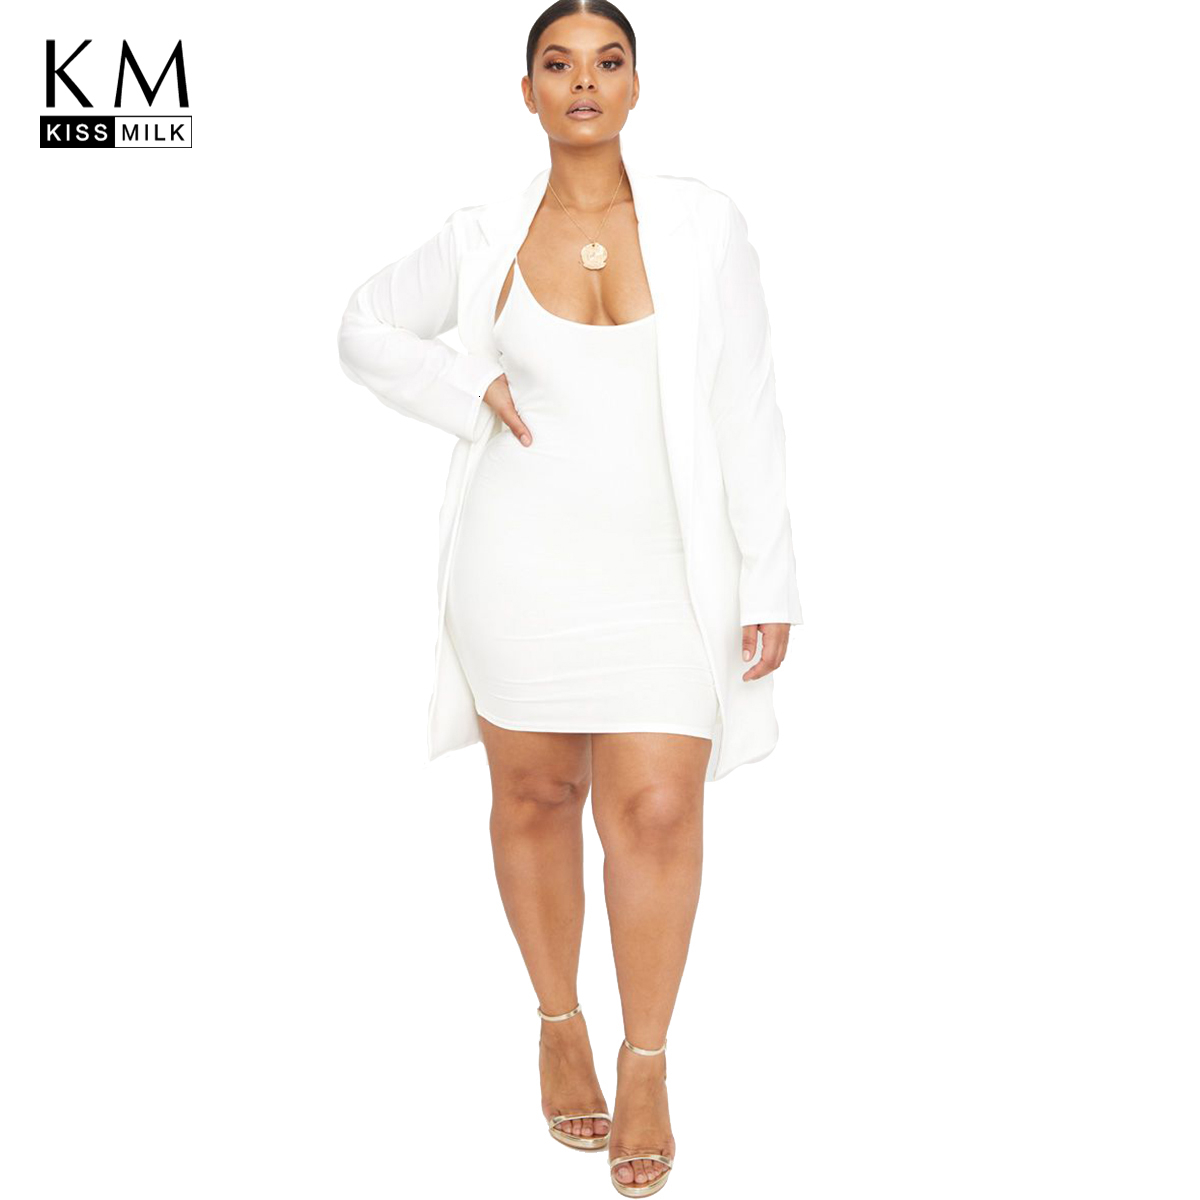 Kissmilk Plus Size Woman Clothes Suit Collar Cardigan Without Button Long-Sleeved Large Size Blazer